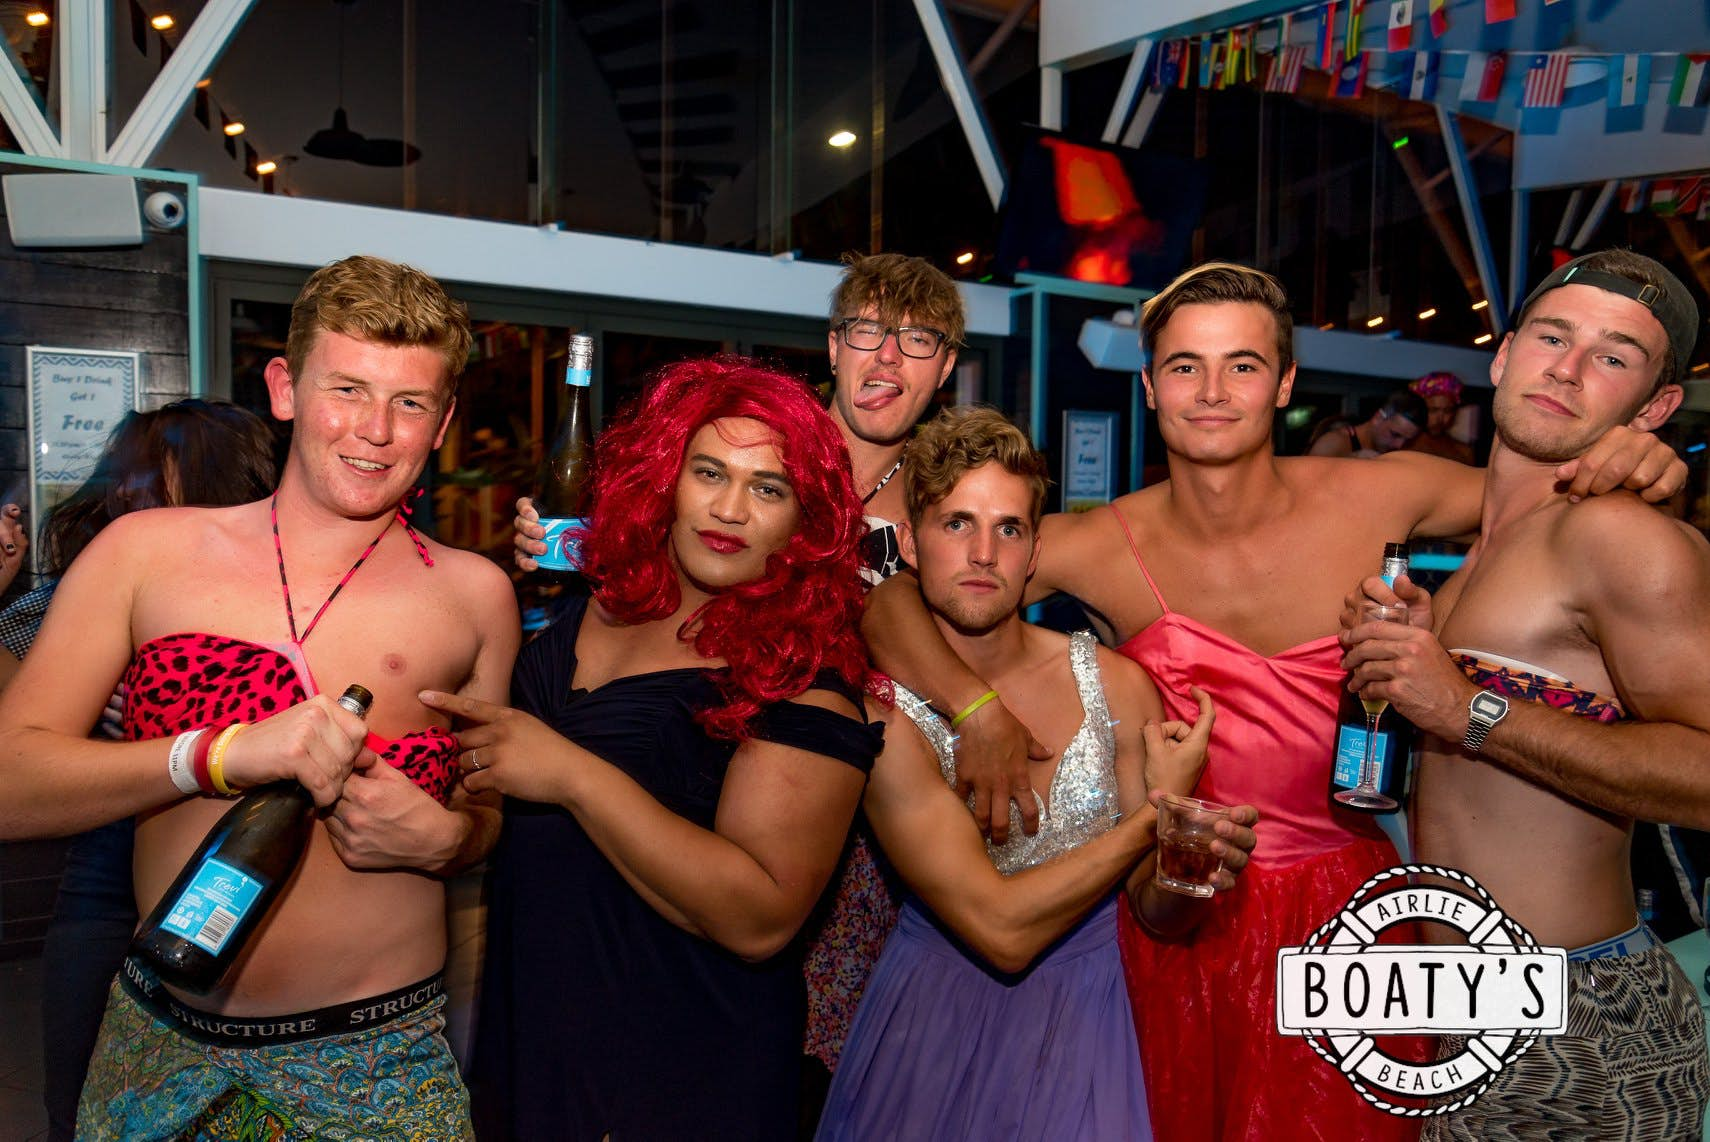 ladyboy comp at airlie beach base backpackers